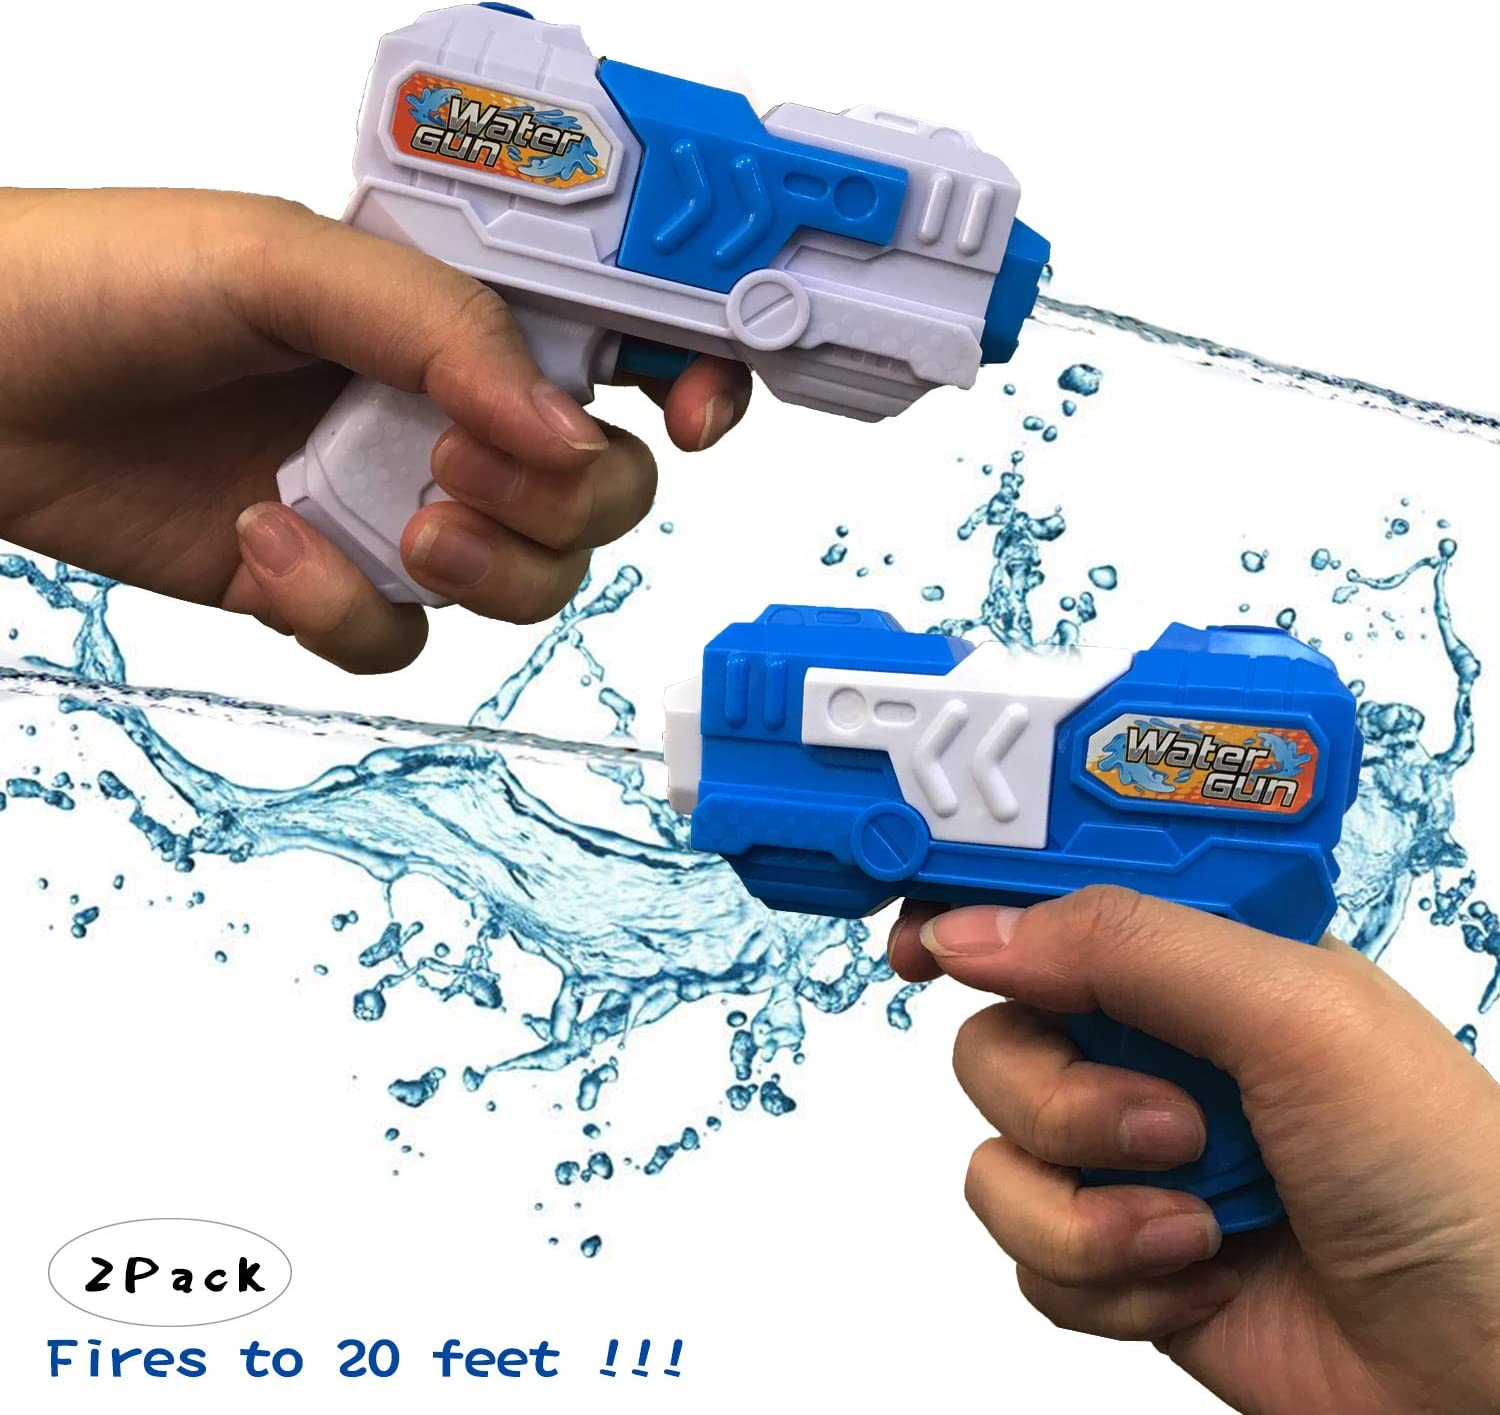 Ziwing Water Squirt Pistol Gun Pocket Size 2 Pack for Kids Adults ,Hot Summer Water Blaster Toys 2019 New: Amazon.es: Juguetes y juegos